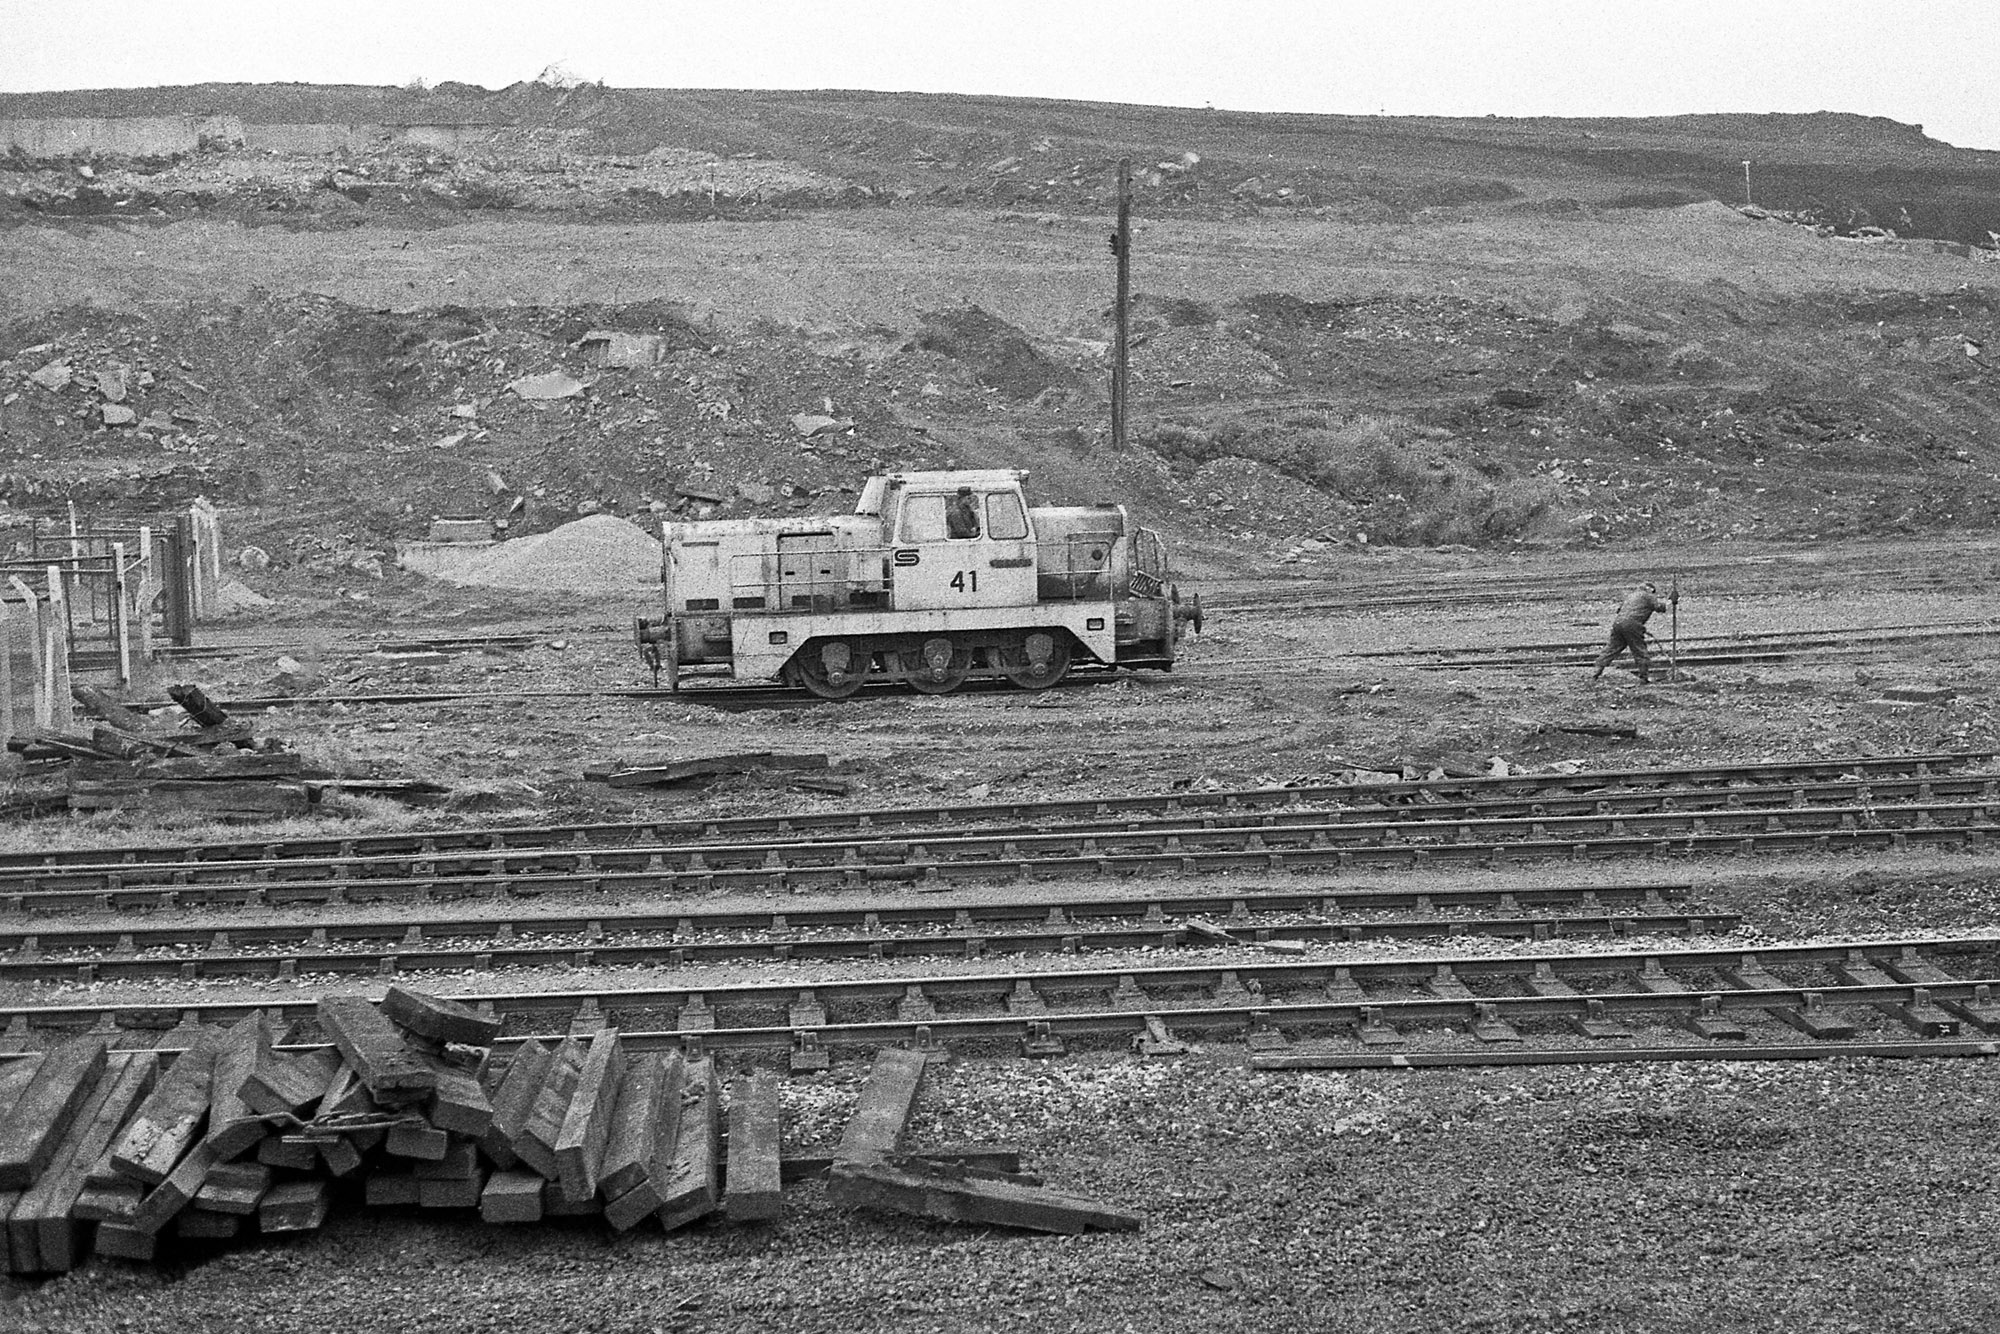 Consett Steelworks Sentinel Shunter 41 sits in the Low Yard in June 1983. Photo copyright Stephen McGahon.